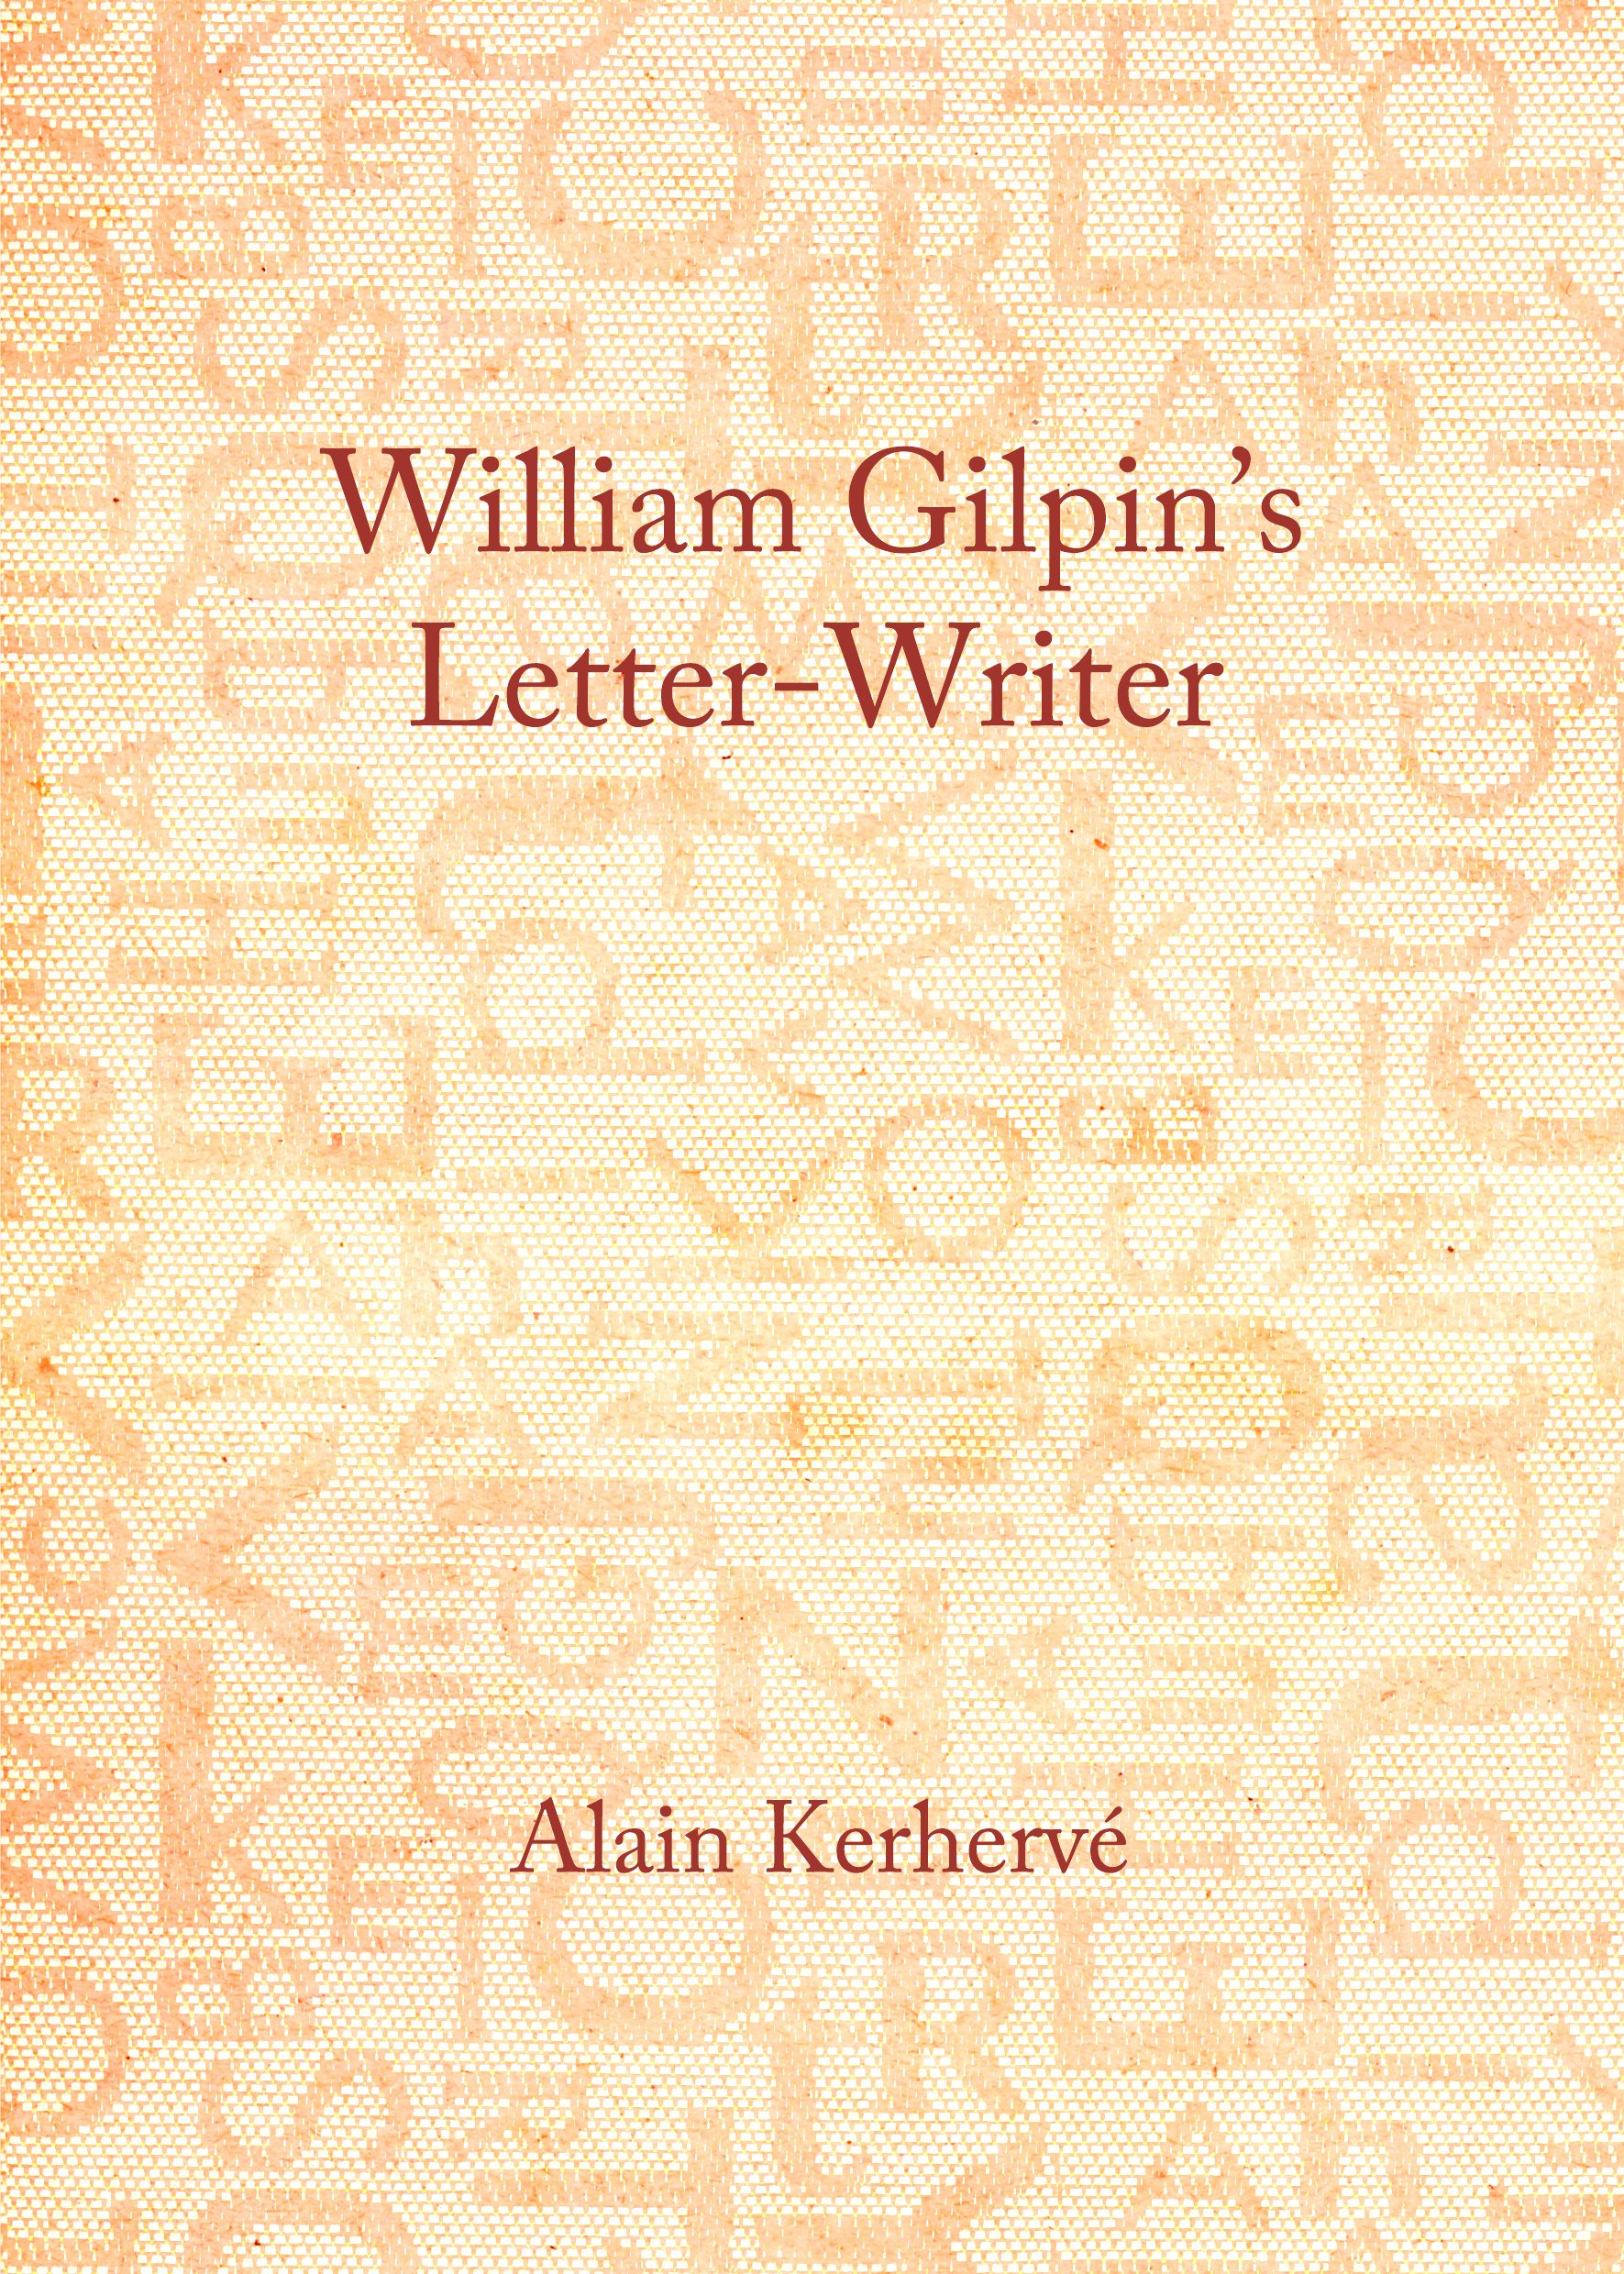 William Gilpin's Letter-Writer